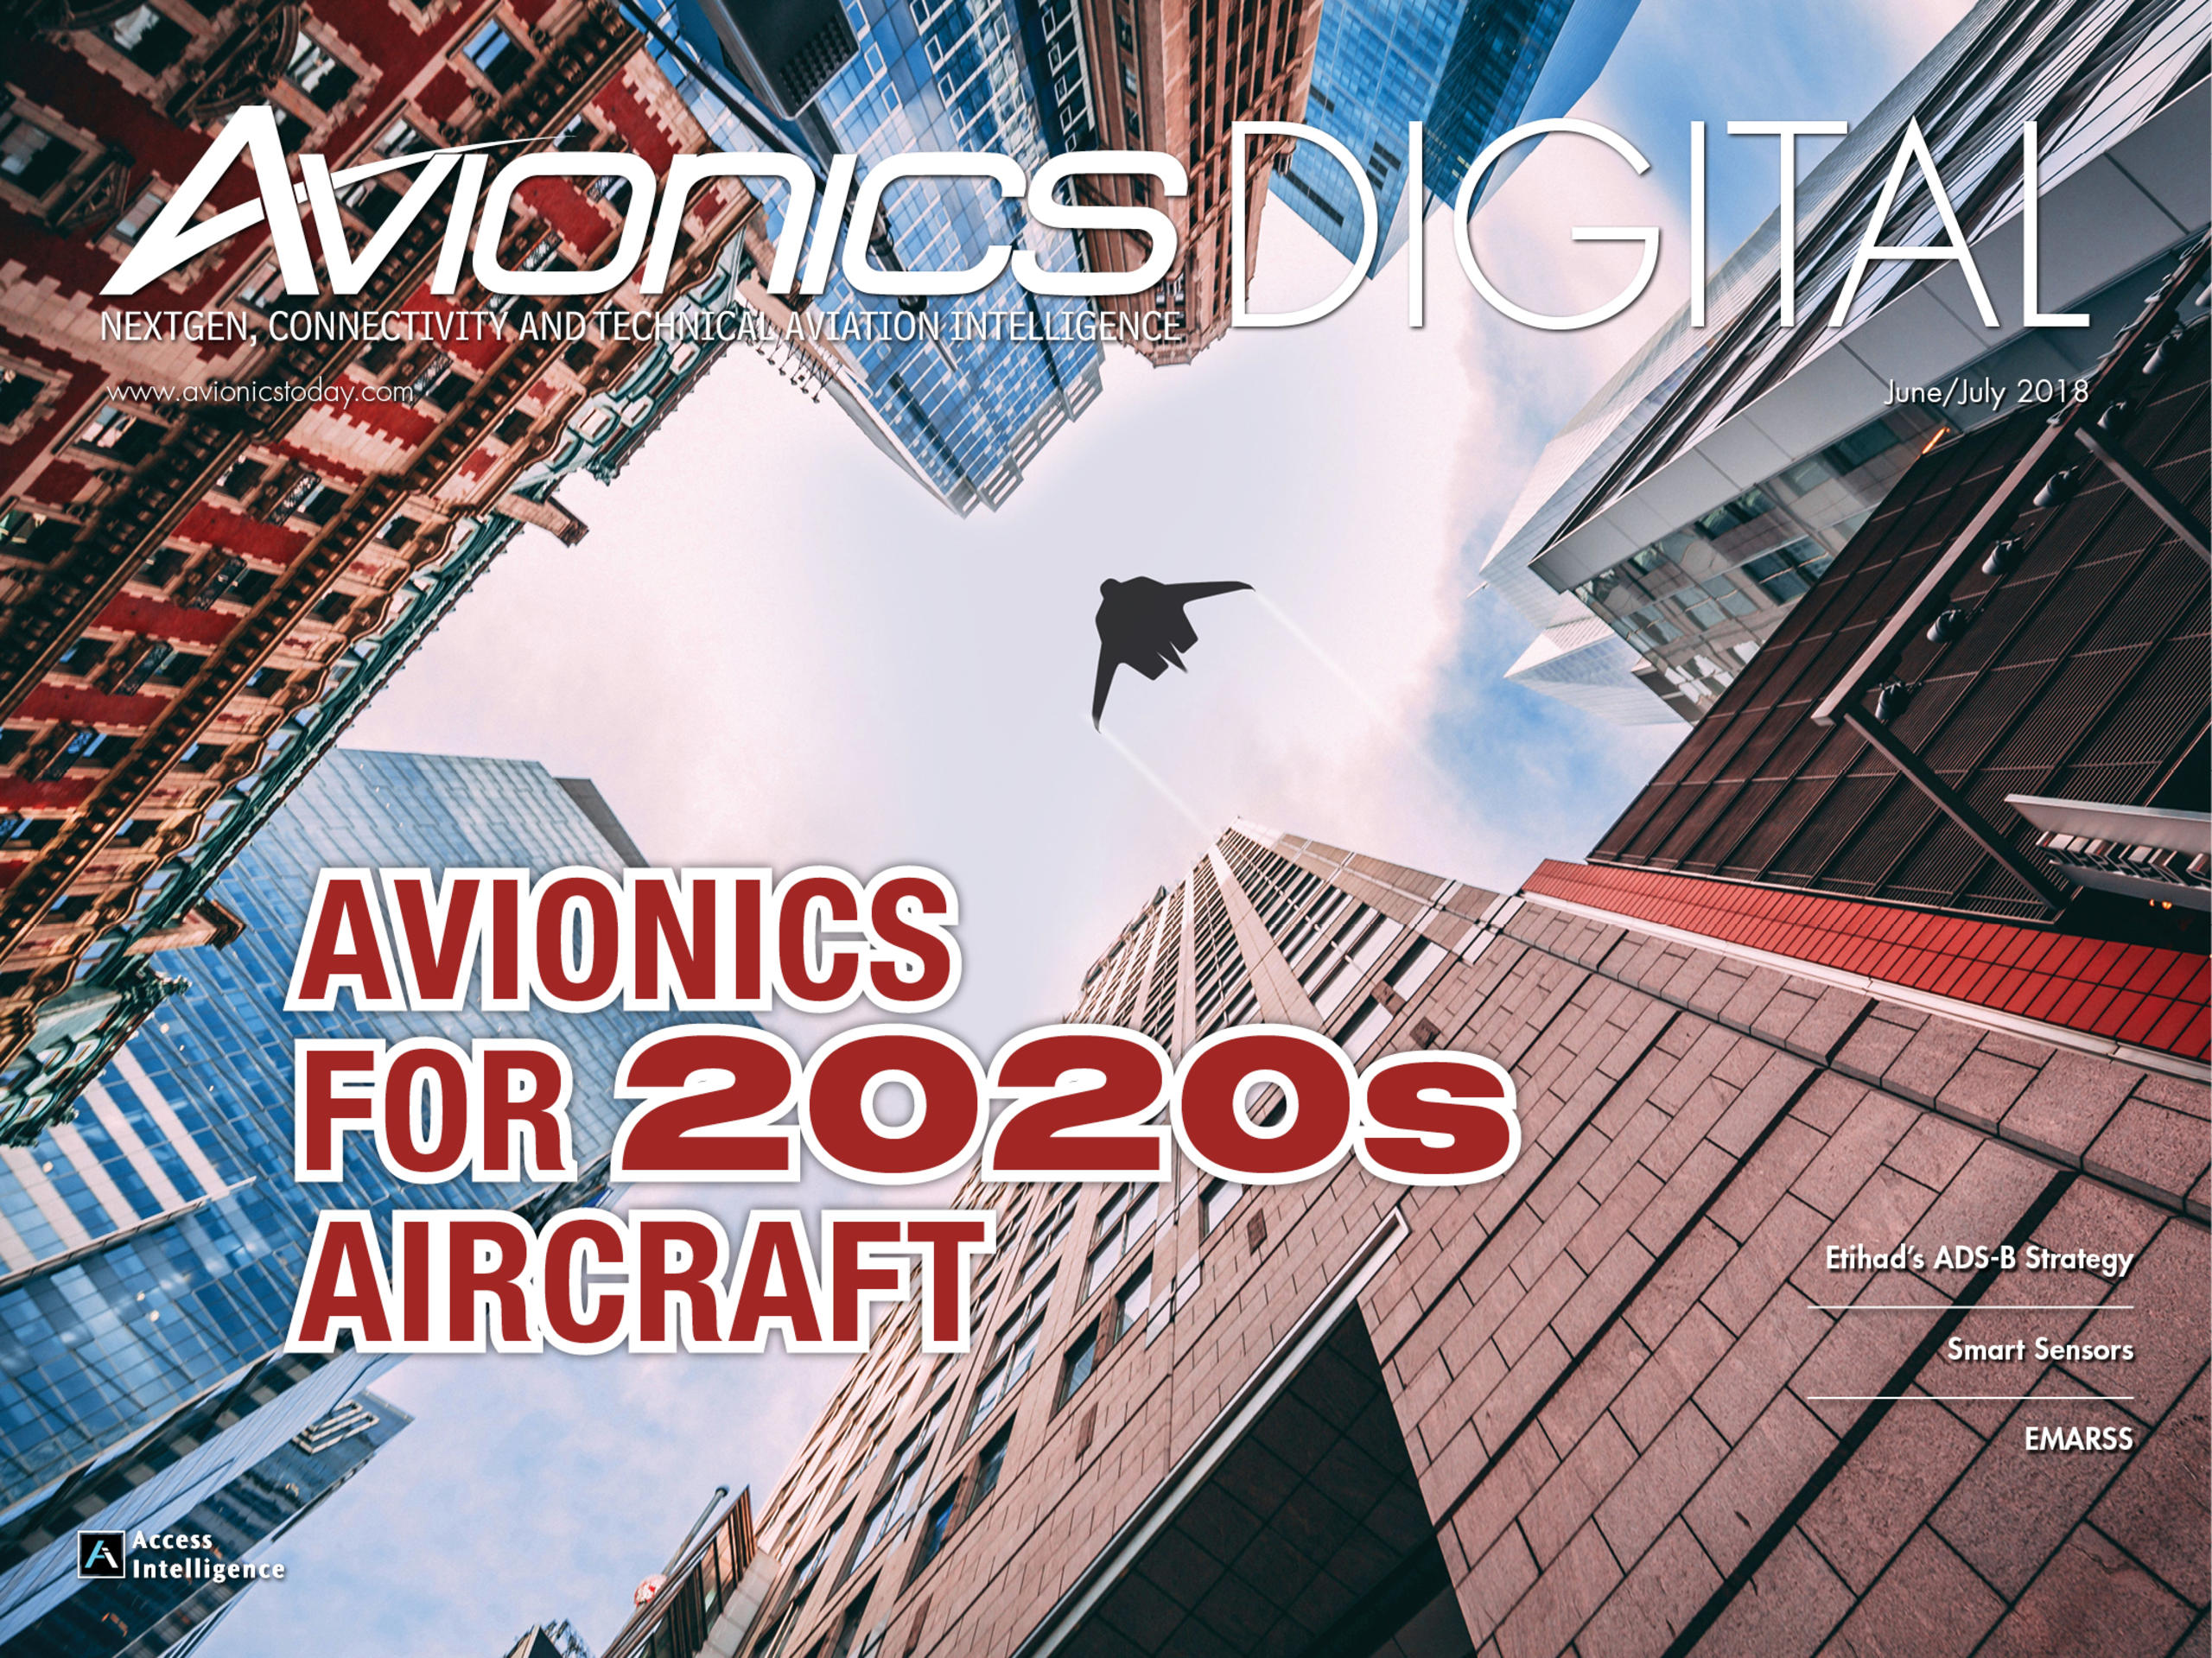 June July 2018 Avionics For 2020s Evtol And Supersonic Aircraft 2010 8 7 Rc Drift Real Circuit Youtube Digital Edition